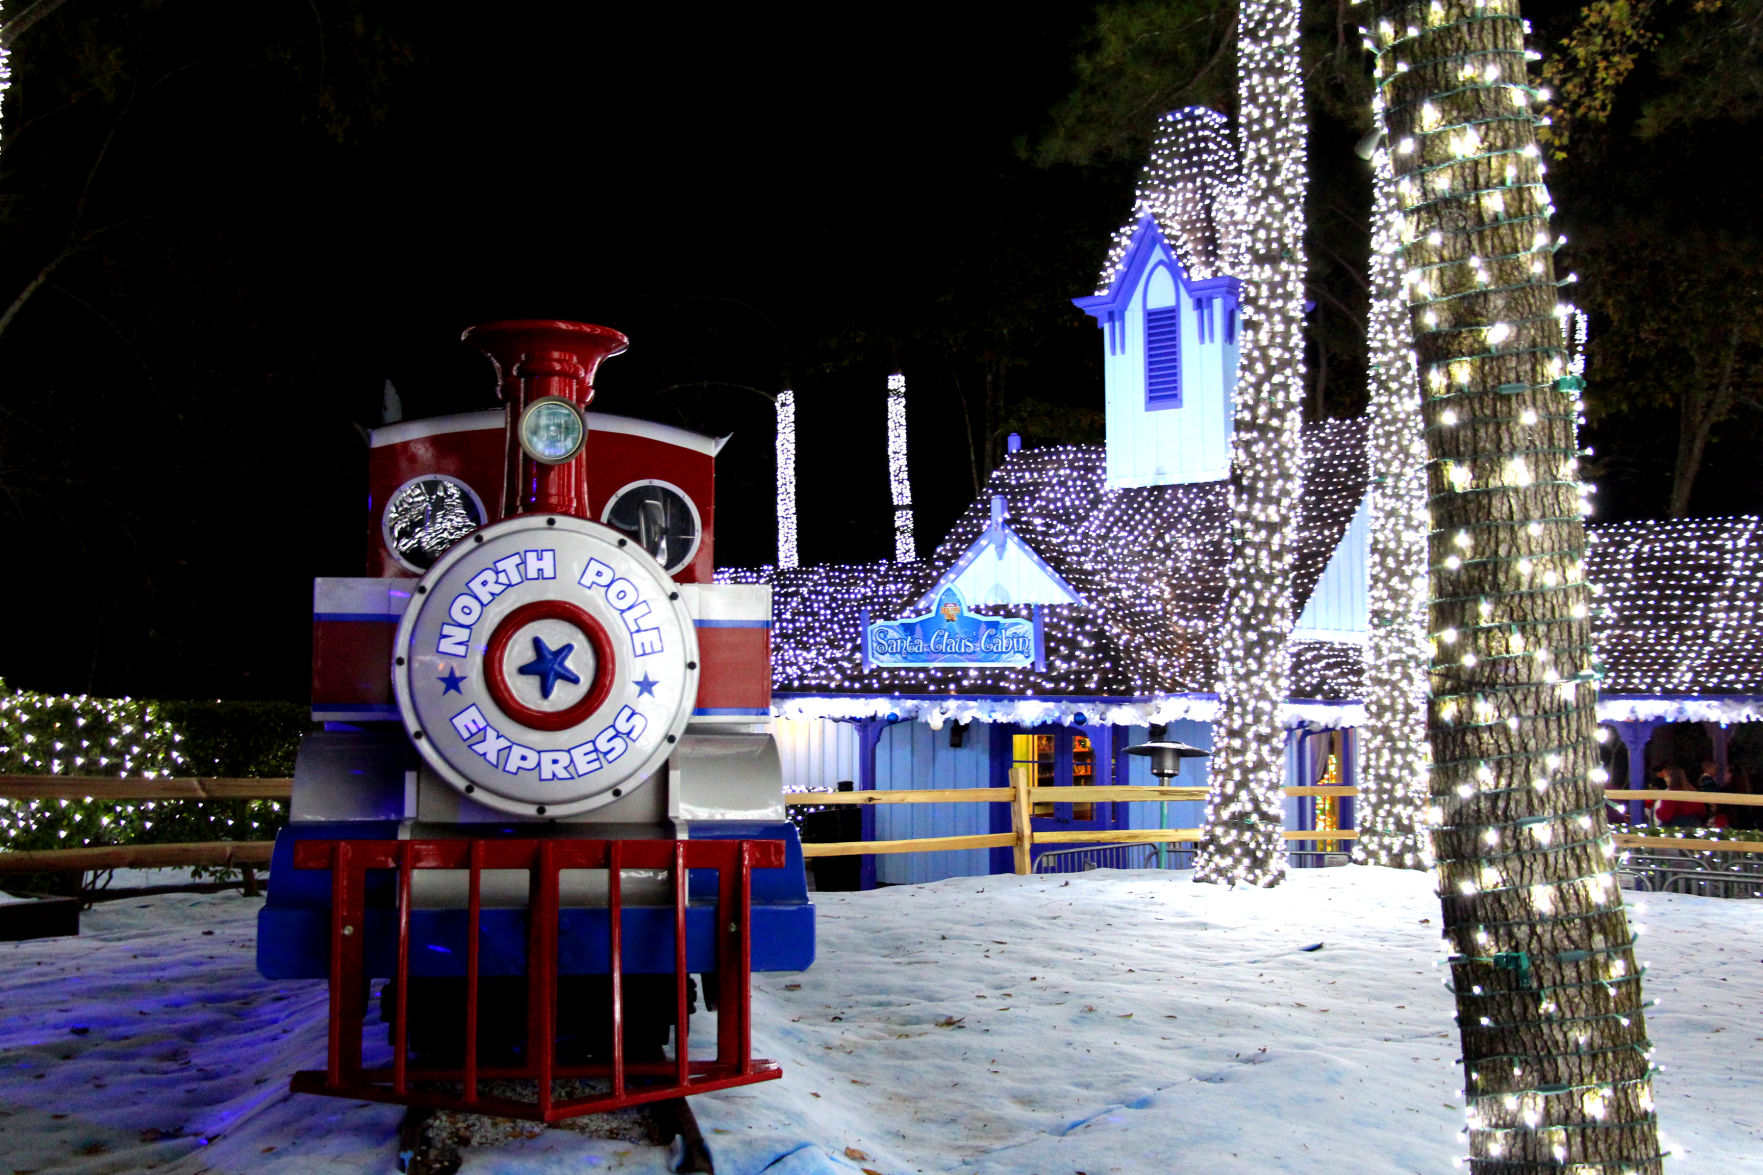 Six Flags Over Georgia Holiday in the Park's winter wonderland ...